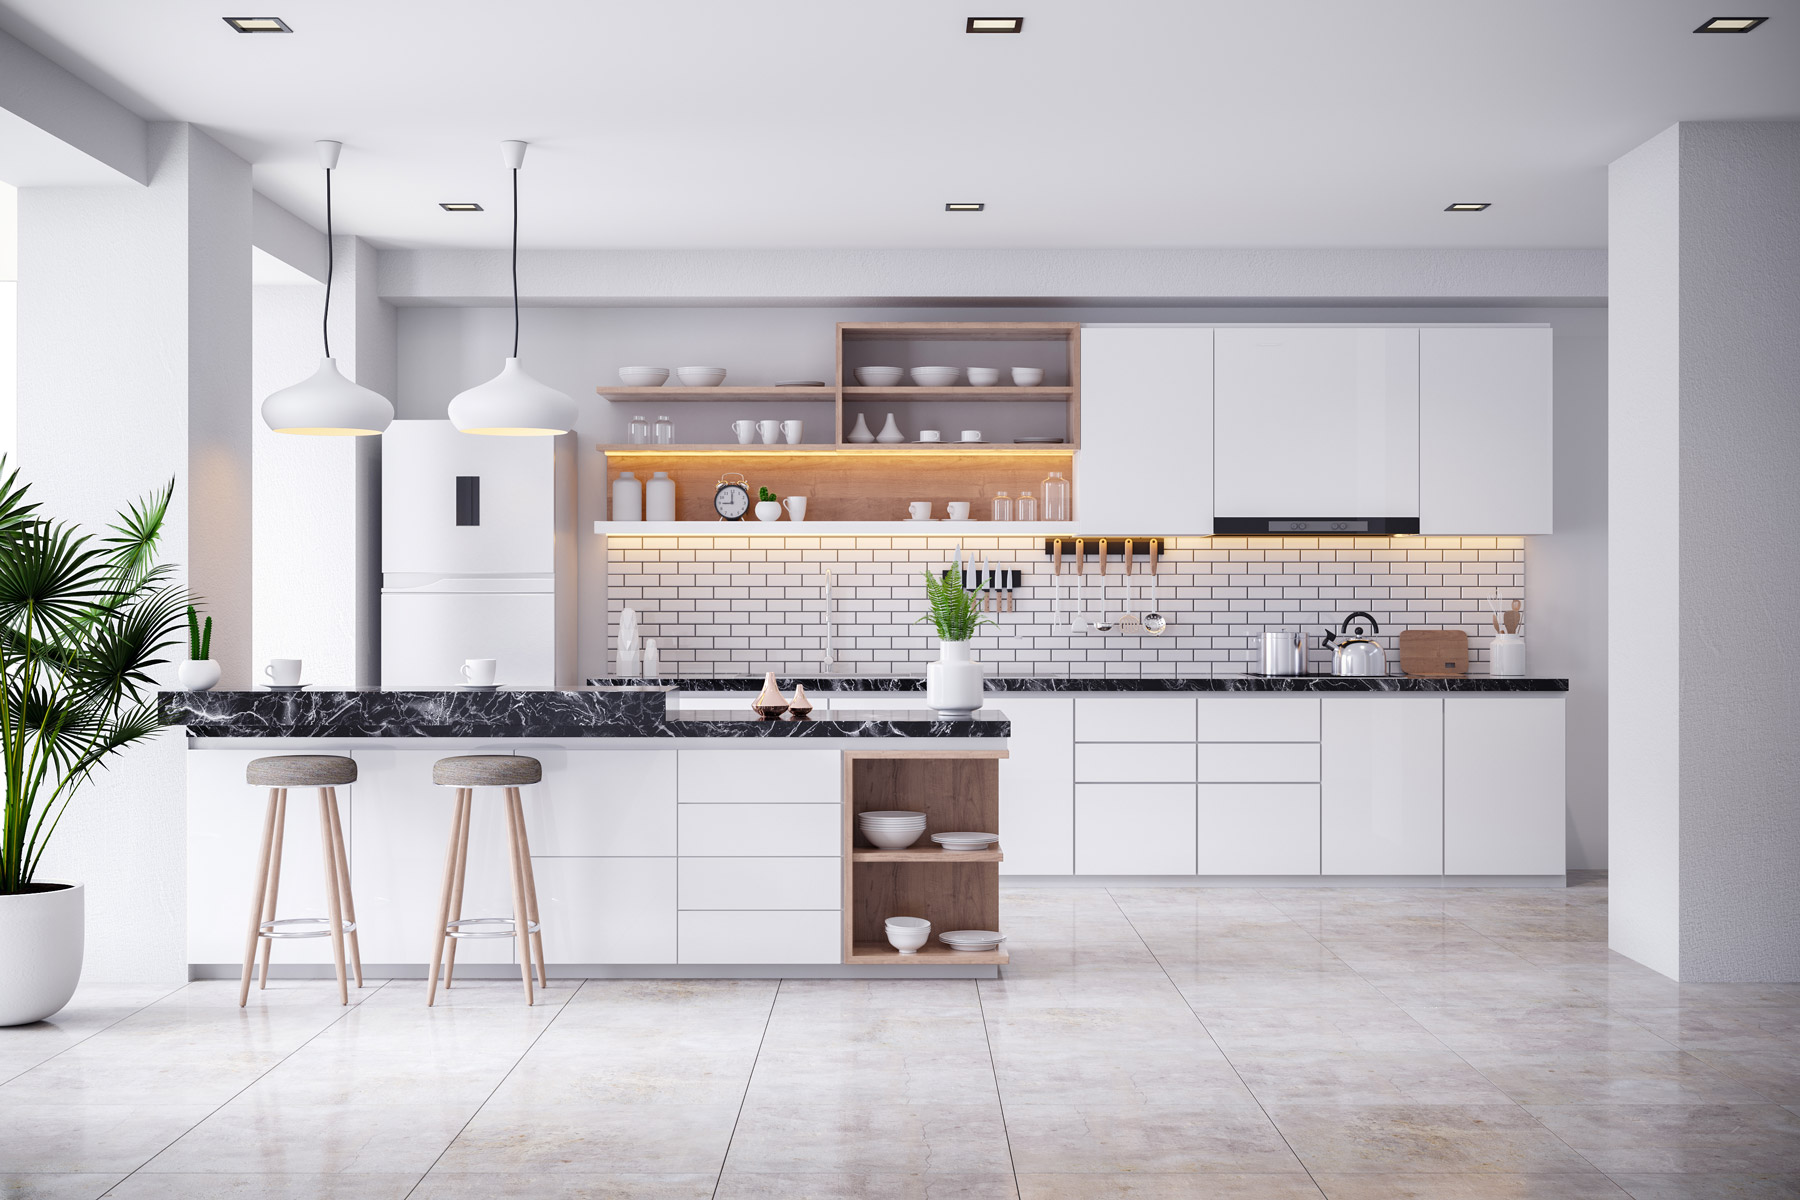 Kitchen Remodel Costs How Much To Spend On Your Renovation